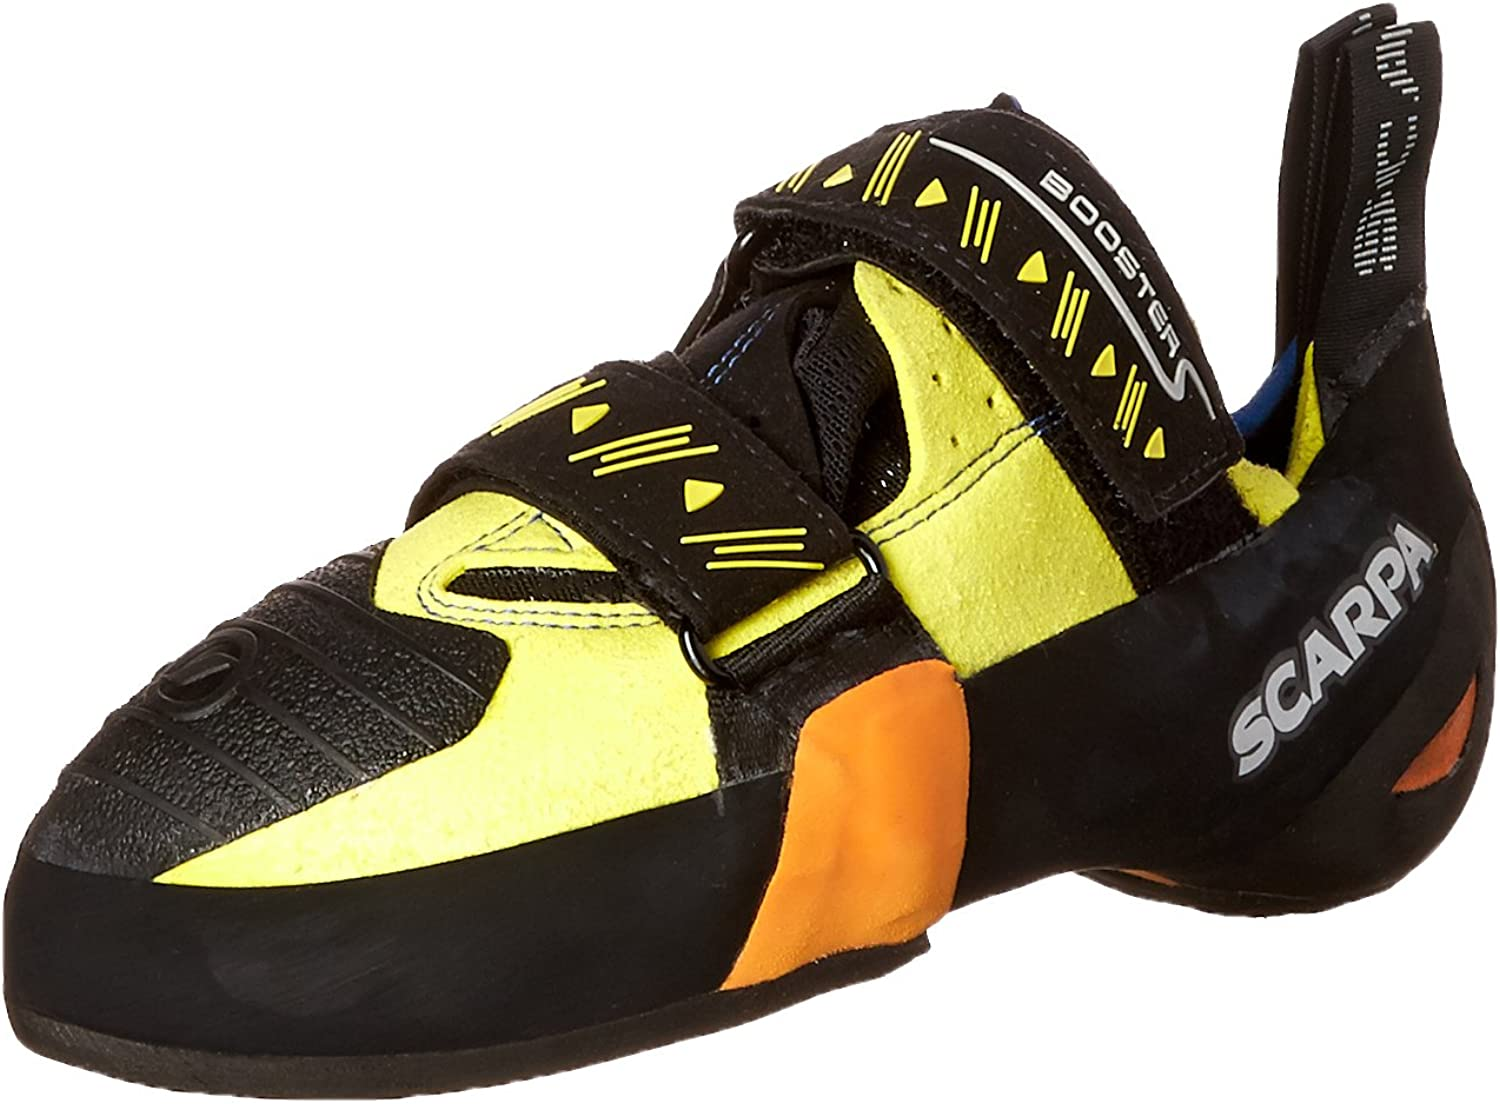 Scarpa Boost Booster S Climbing shoes